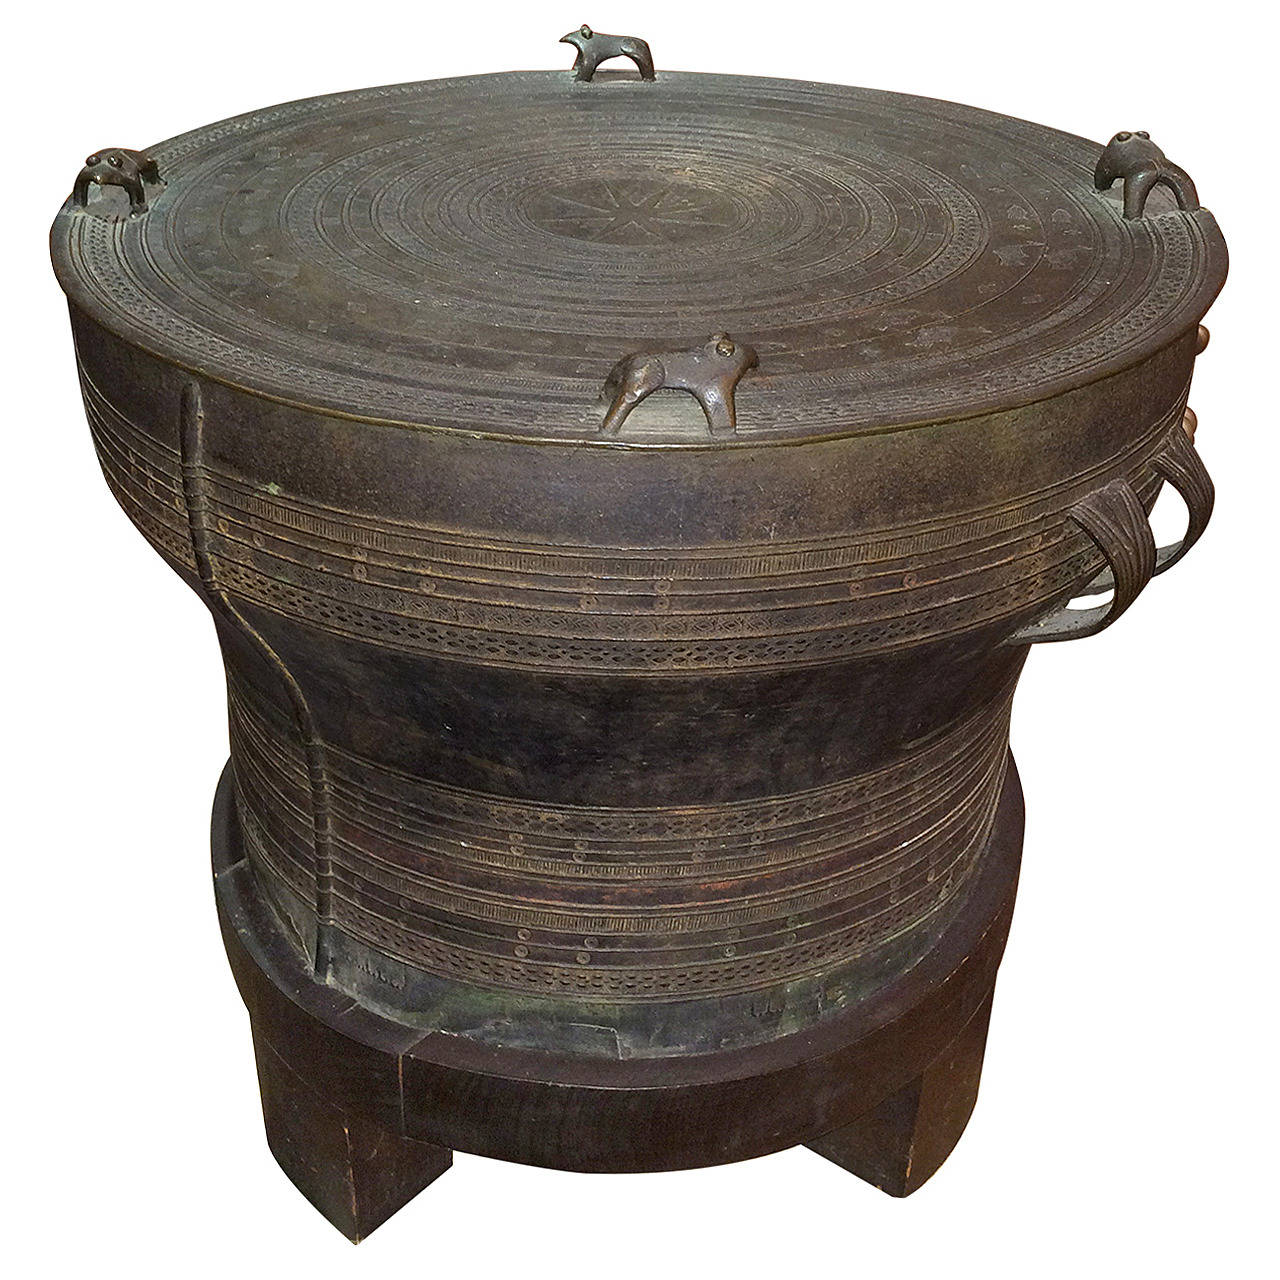 rain drum side table design ideas pottery barn frog accent bronze wooden storage chest ikea gold circle coffee round cover tyndall furniture west elm outdoor lighting antique